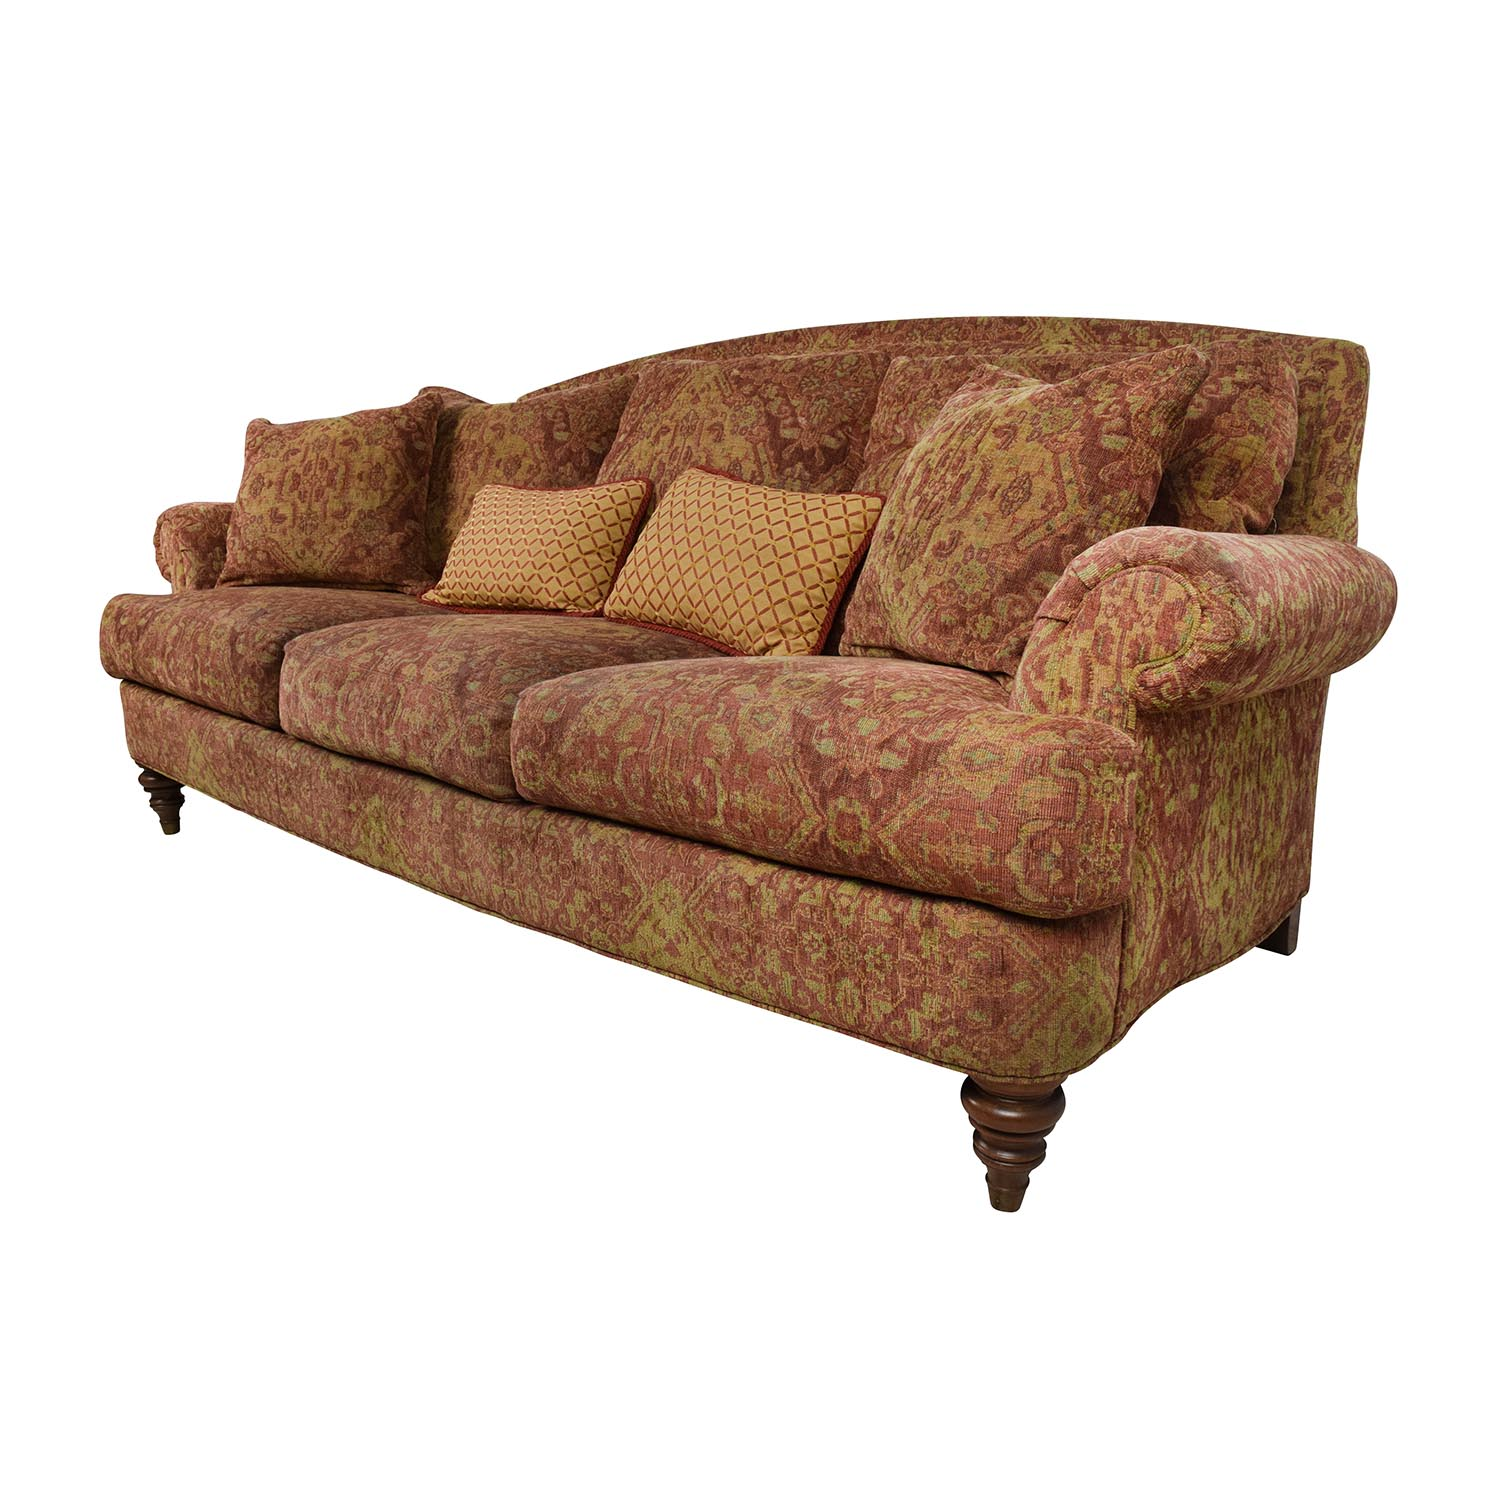 65 OFF Ethan Allen Ethan Allen Paisley Cushioned Sofa With Toss Pillows